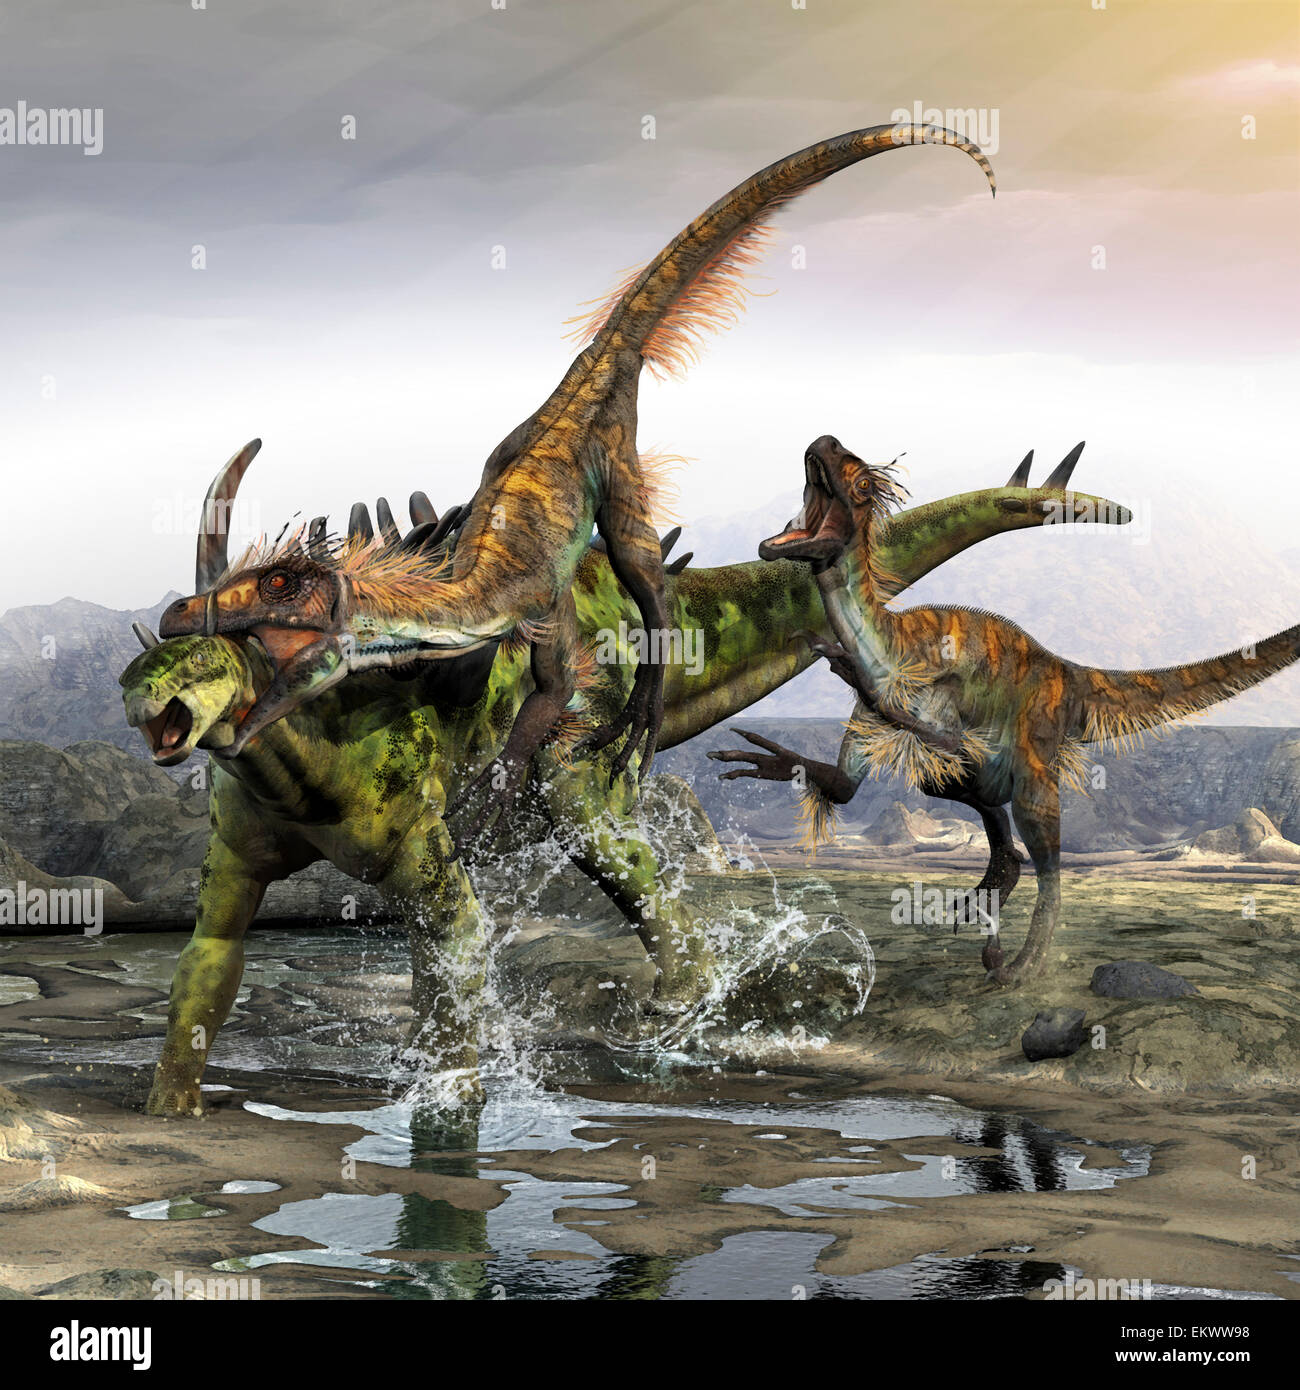 A Utahraptor manages to slip through a Gigantspinosaurus's armor with a throat kill. - Stock Image